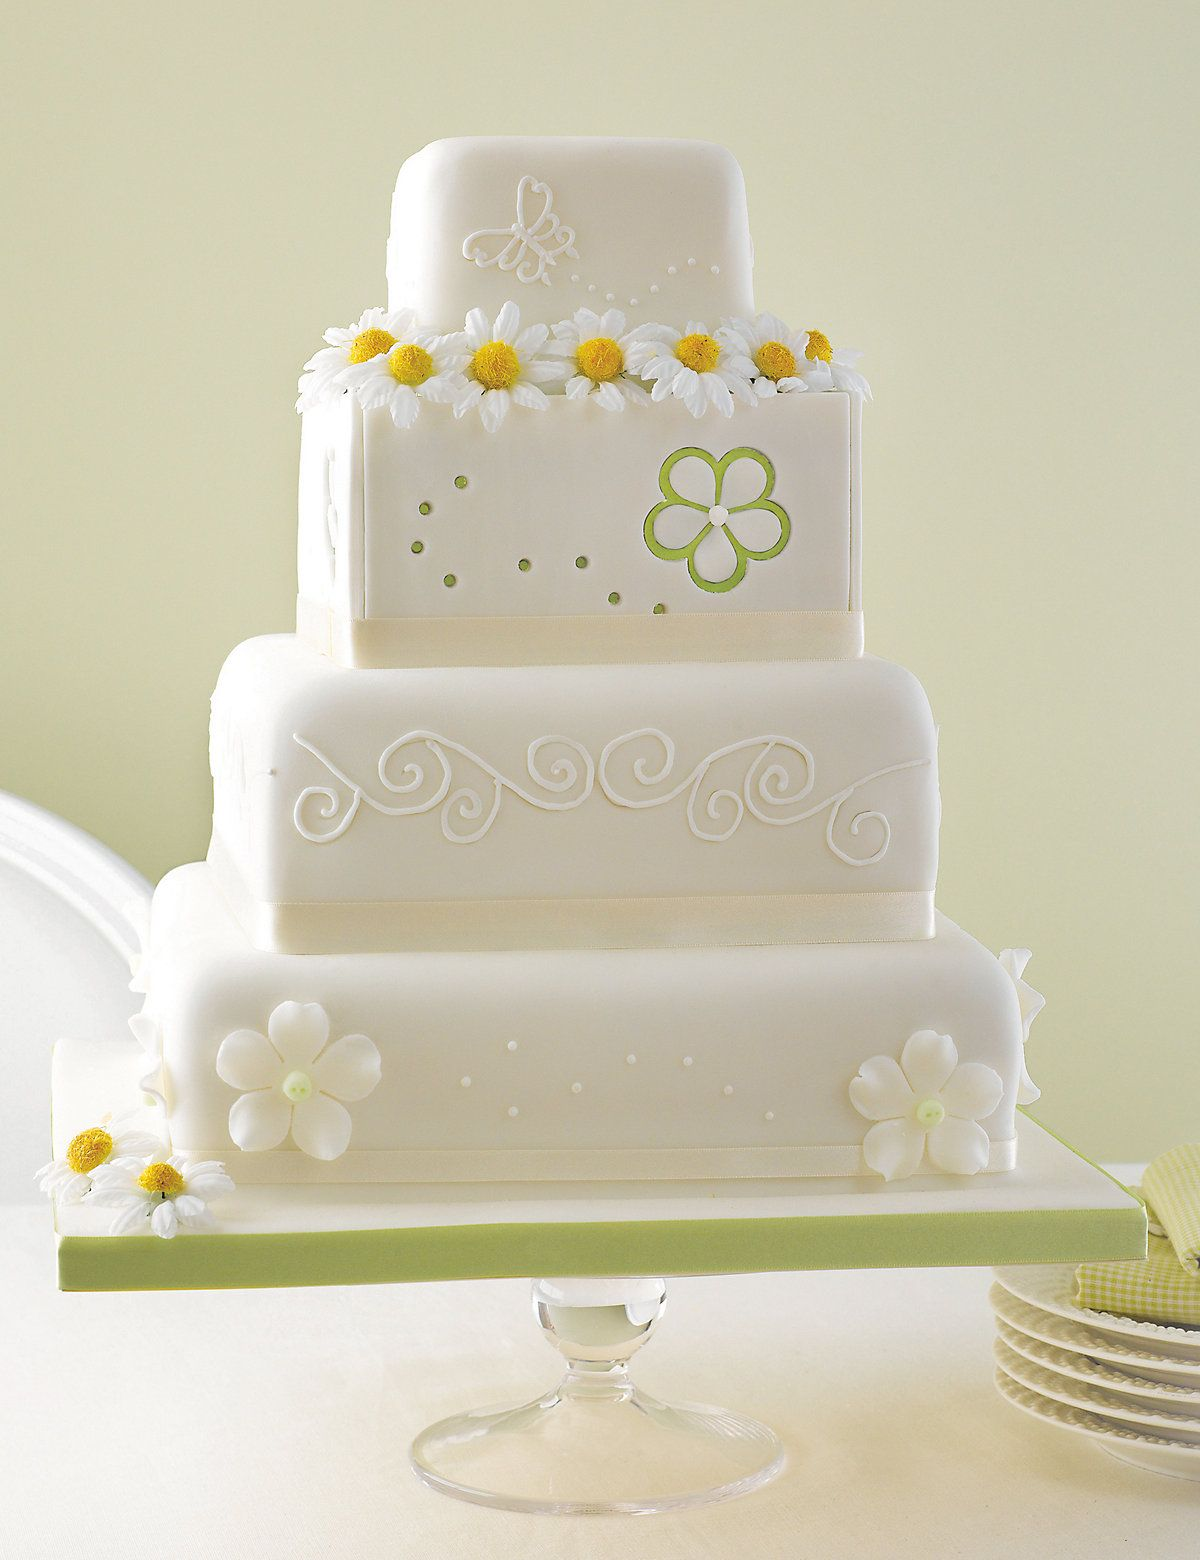 The tier meadow assorted cake with different designs on each tier